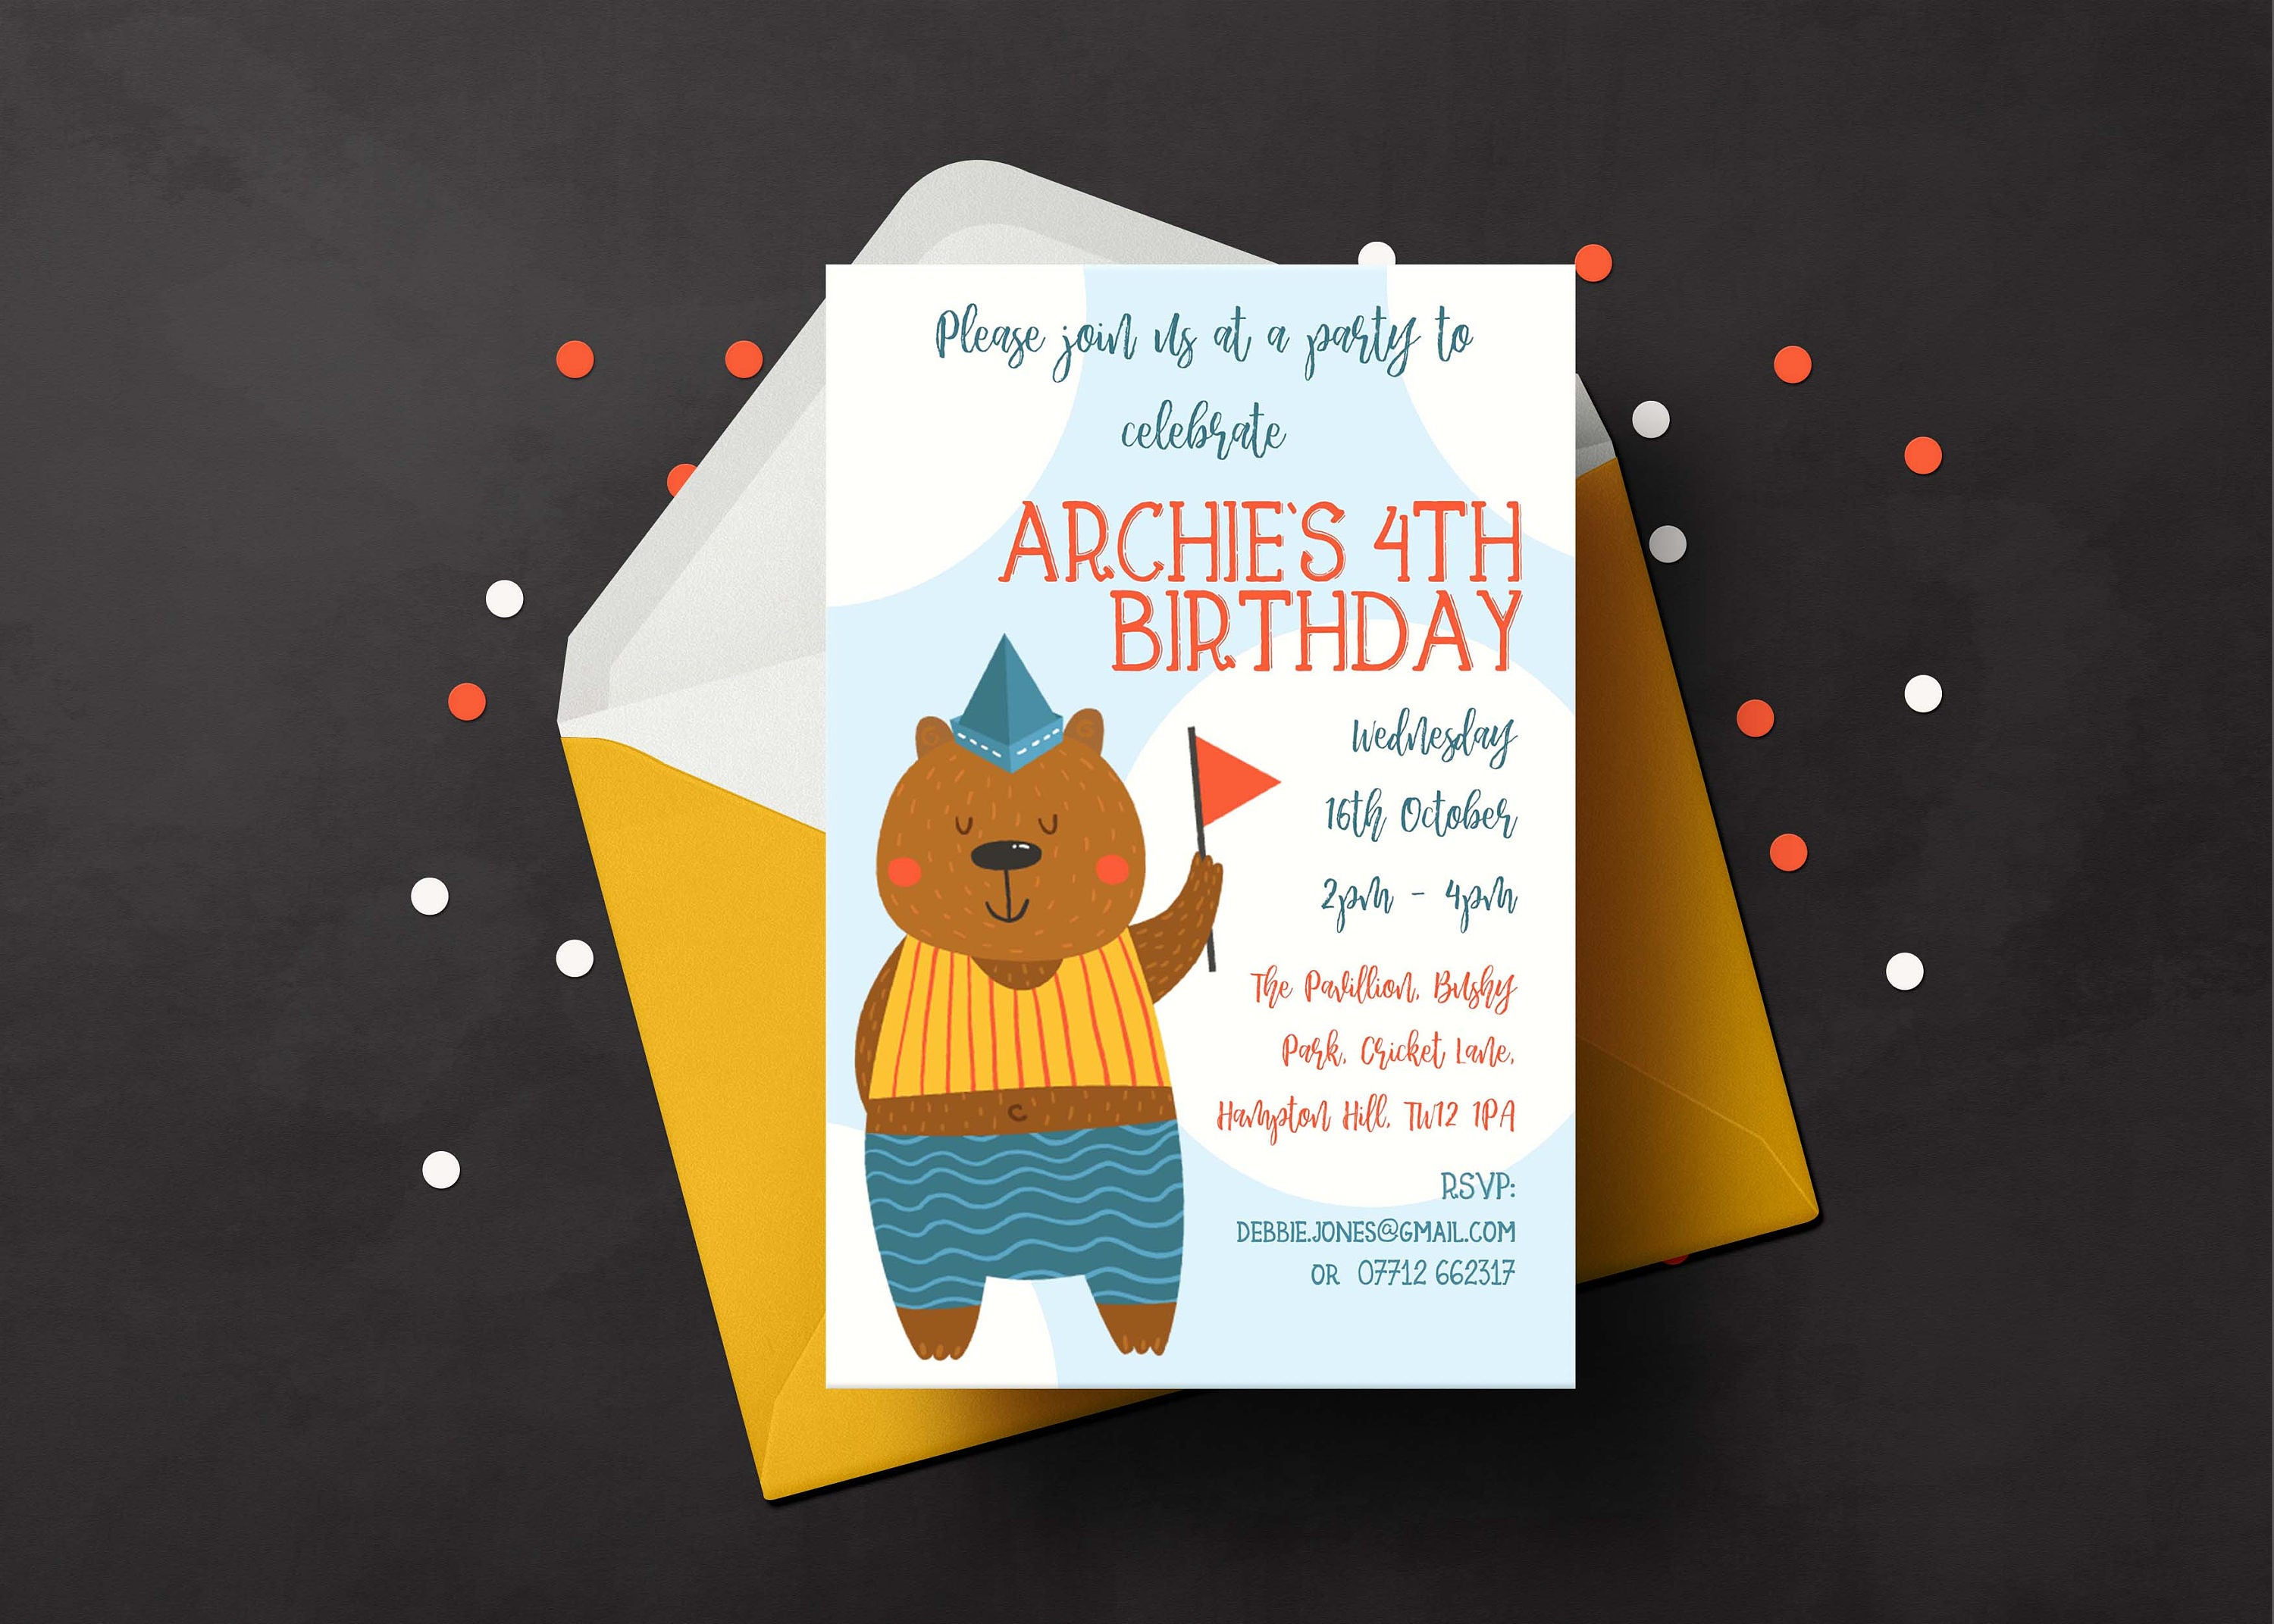 Birthday party invitation childs party invite custom party birthday party invitation childs party invite custom party invite kids birthday invitation filmwisefo Gallery